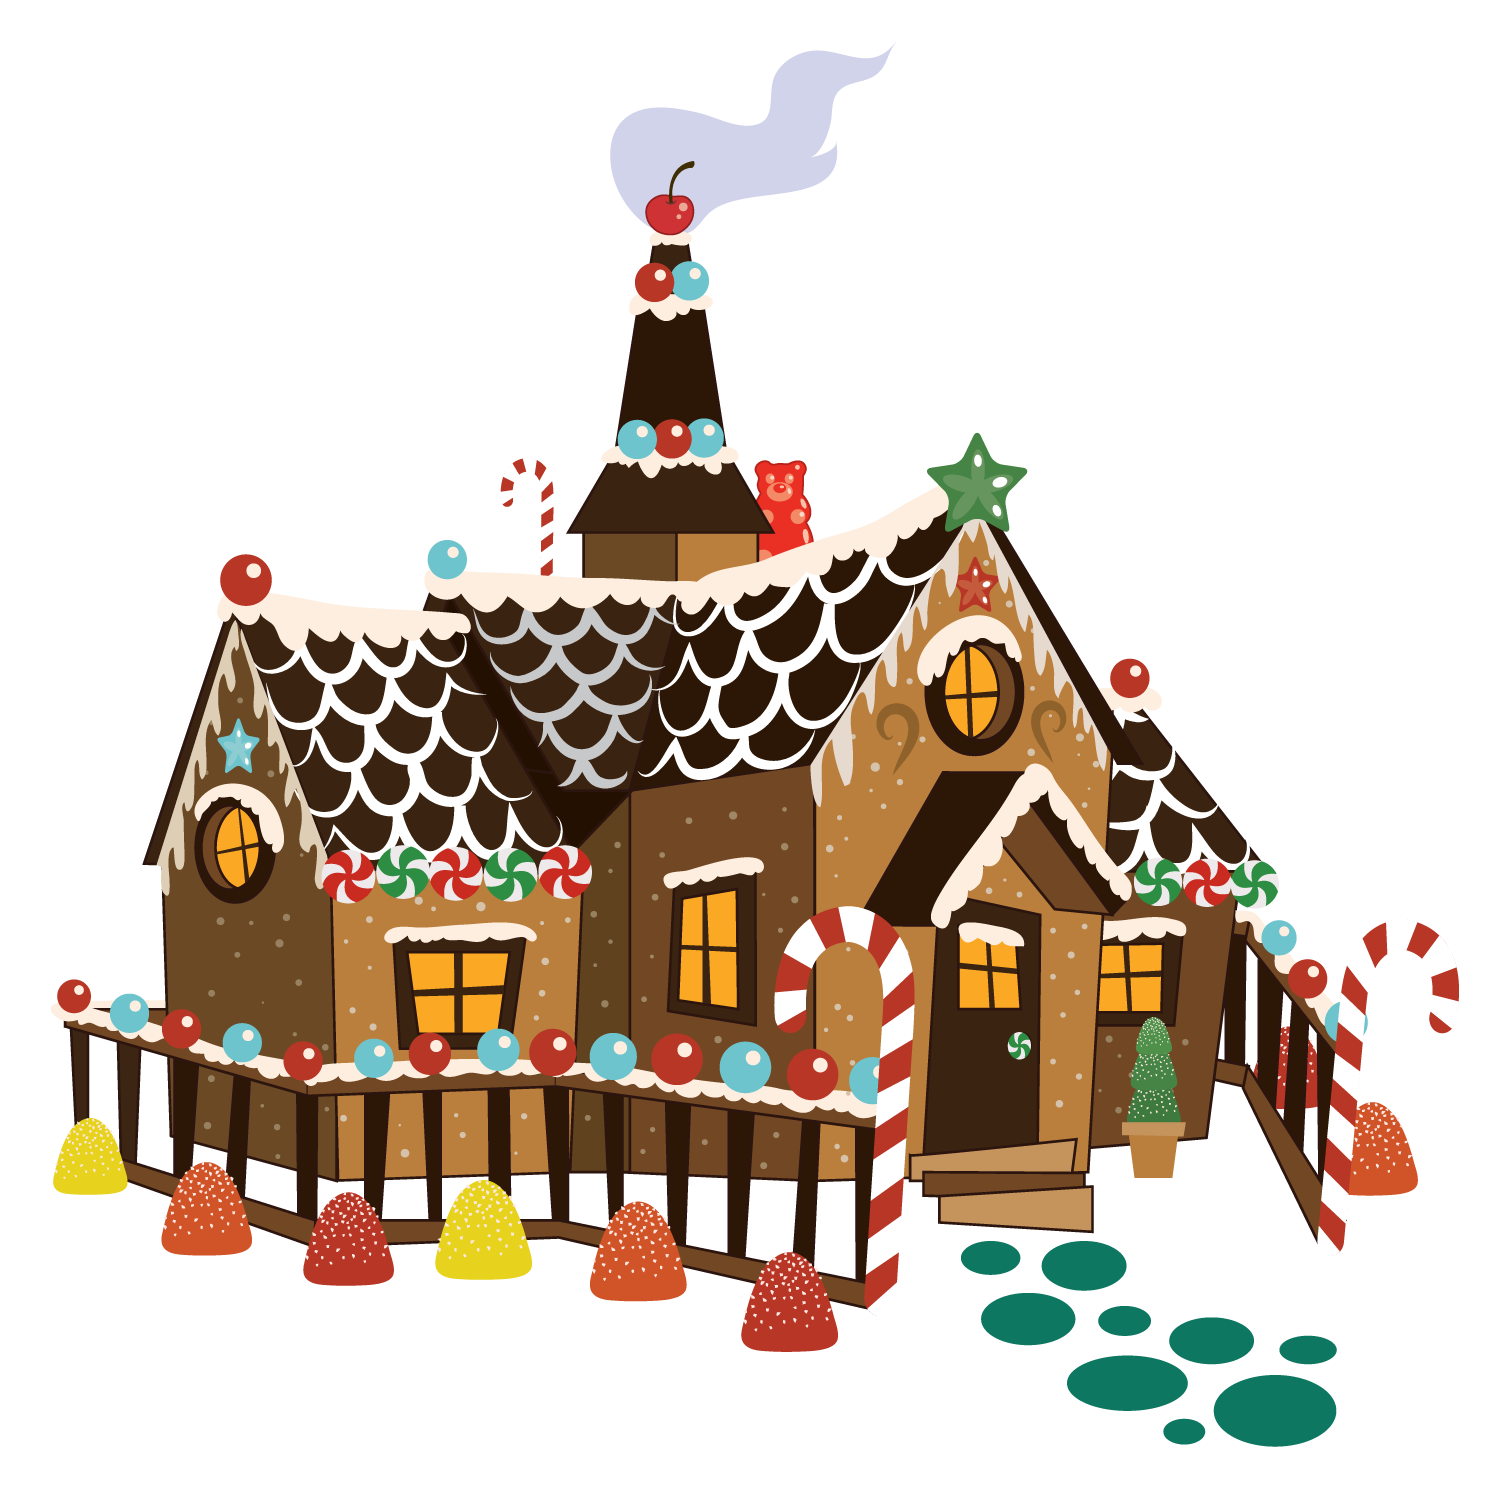 Hansel and gretel gingerbread house clipart clip art free download Hansel and Gretel clip art free download